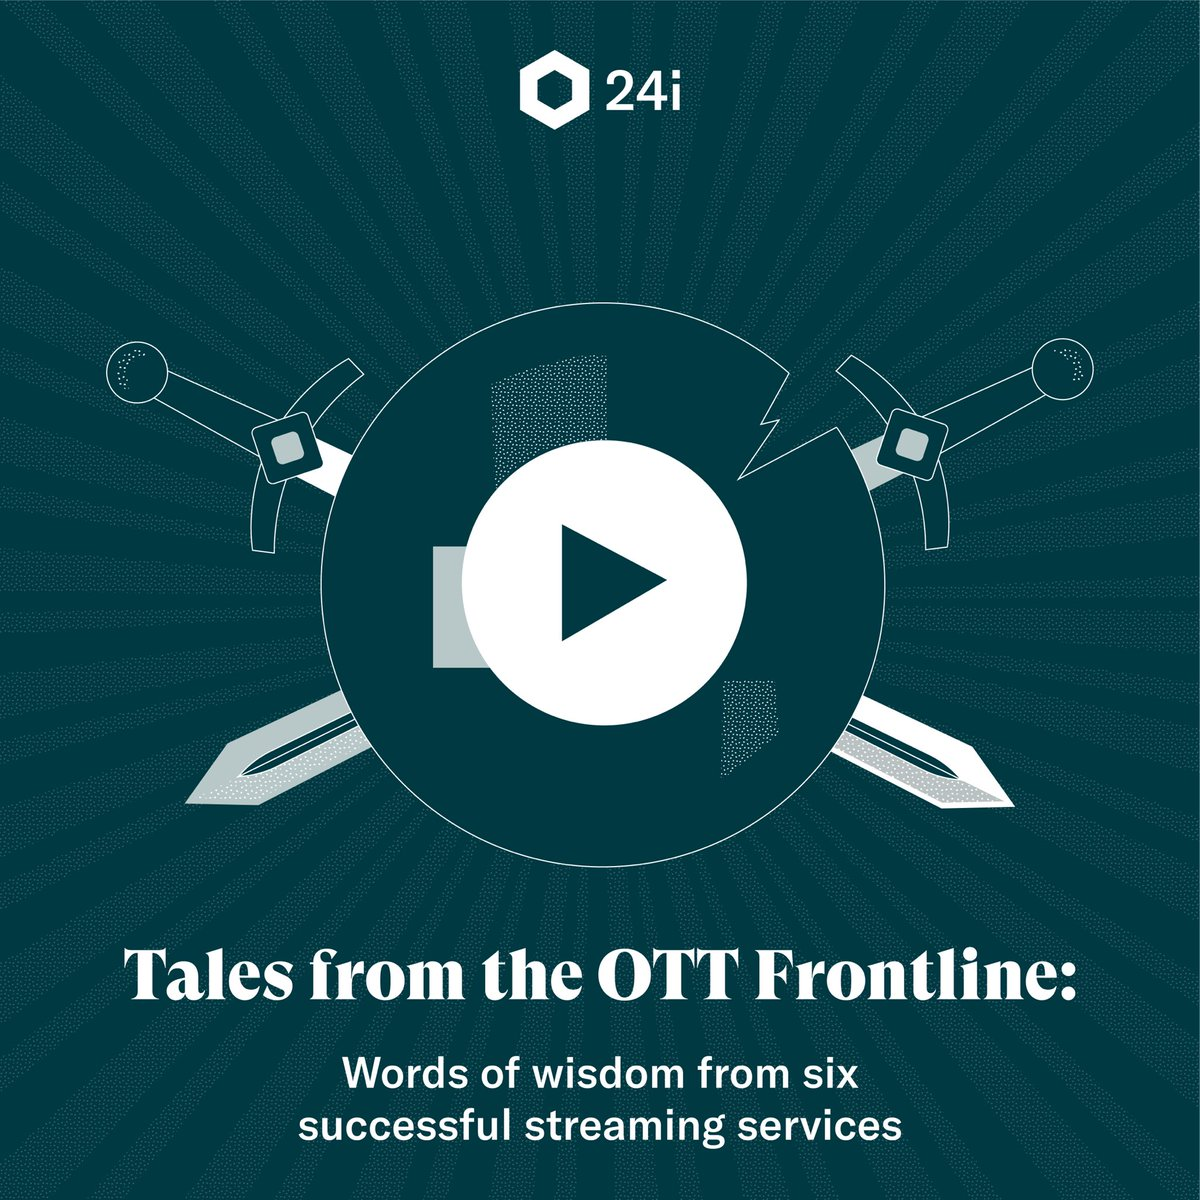 How do specialist OTT services survive the streaming wars? Hear from six of 24i's customers on their successes and struggles in their whitepaper Tales from the OTT Frontline:    #OTT #Netflix #Disney #video #Streaming #svod #tvod @topicstories